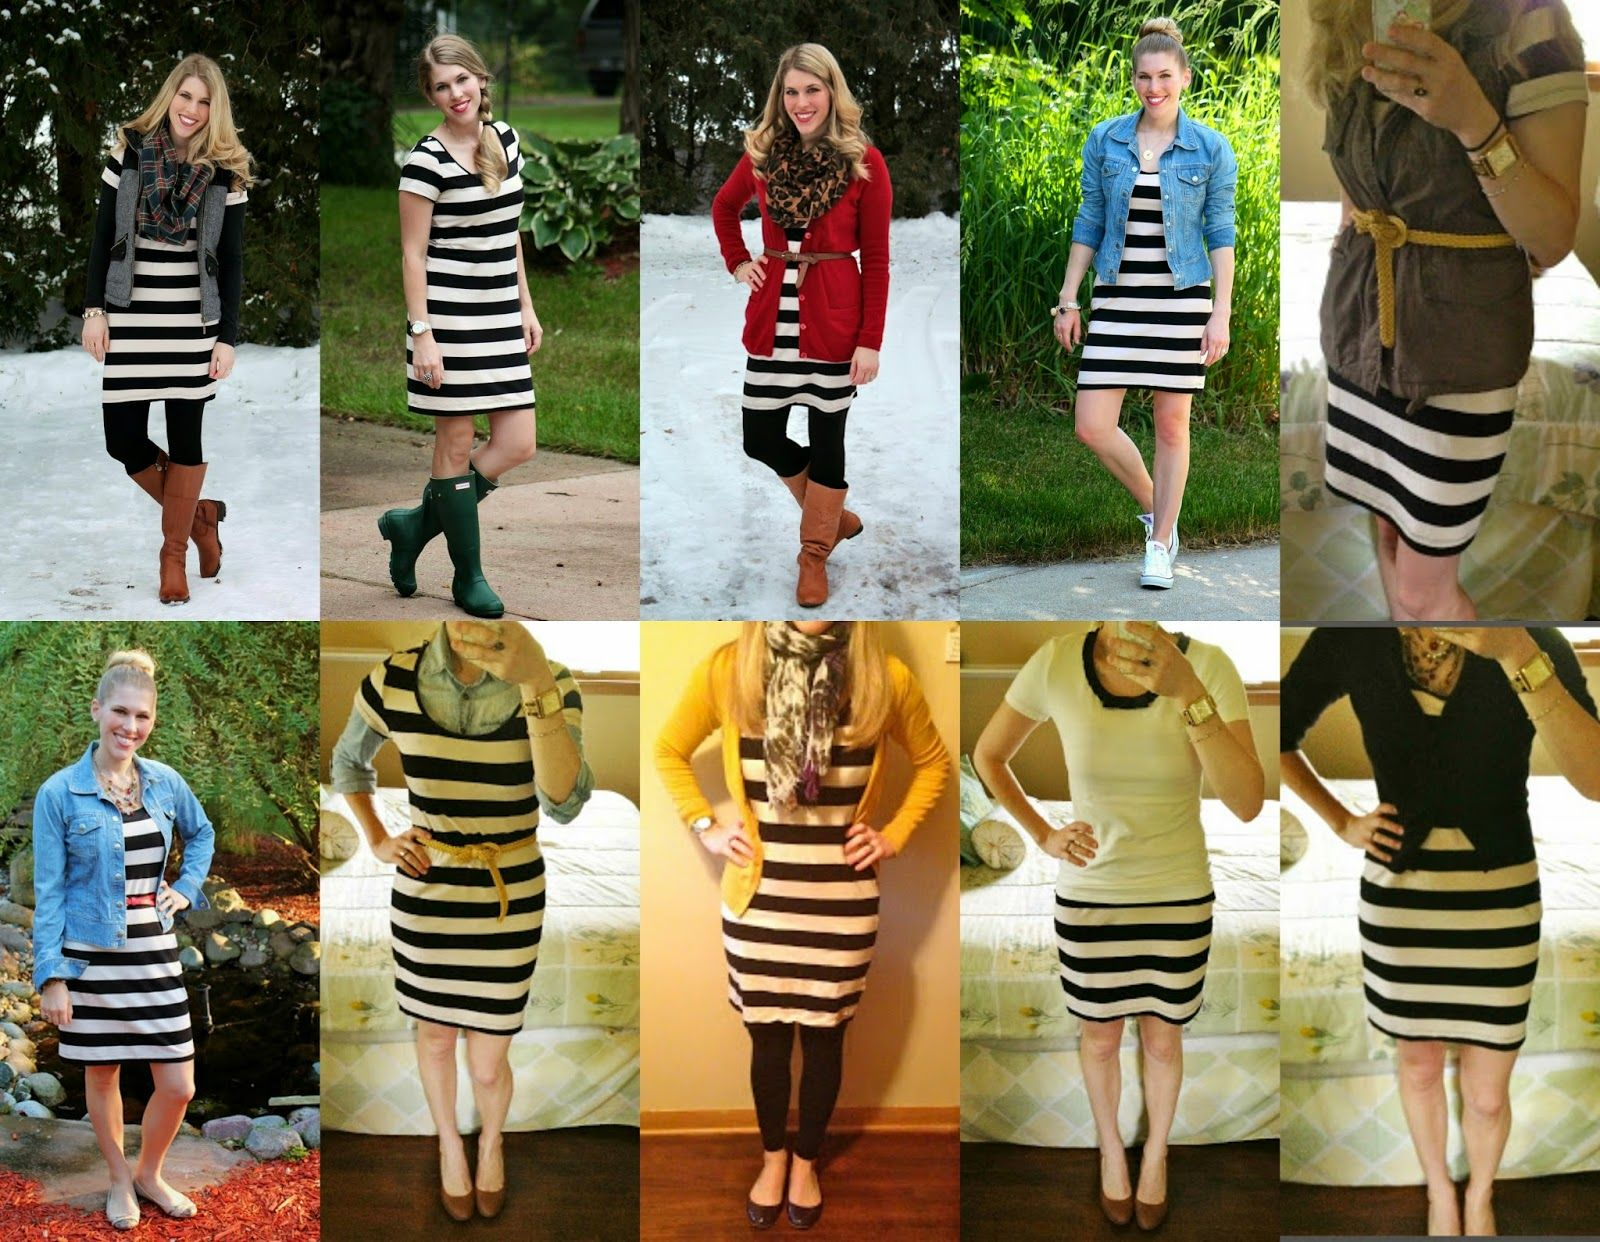 c542b7b7b6 10 ways to wear black and white striped dress | Fashion Blogs ...